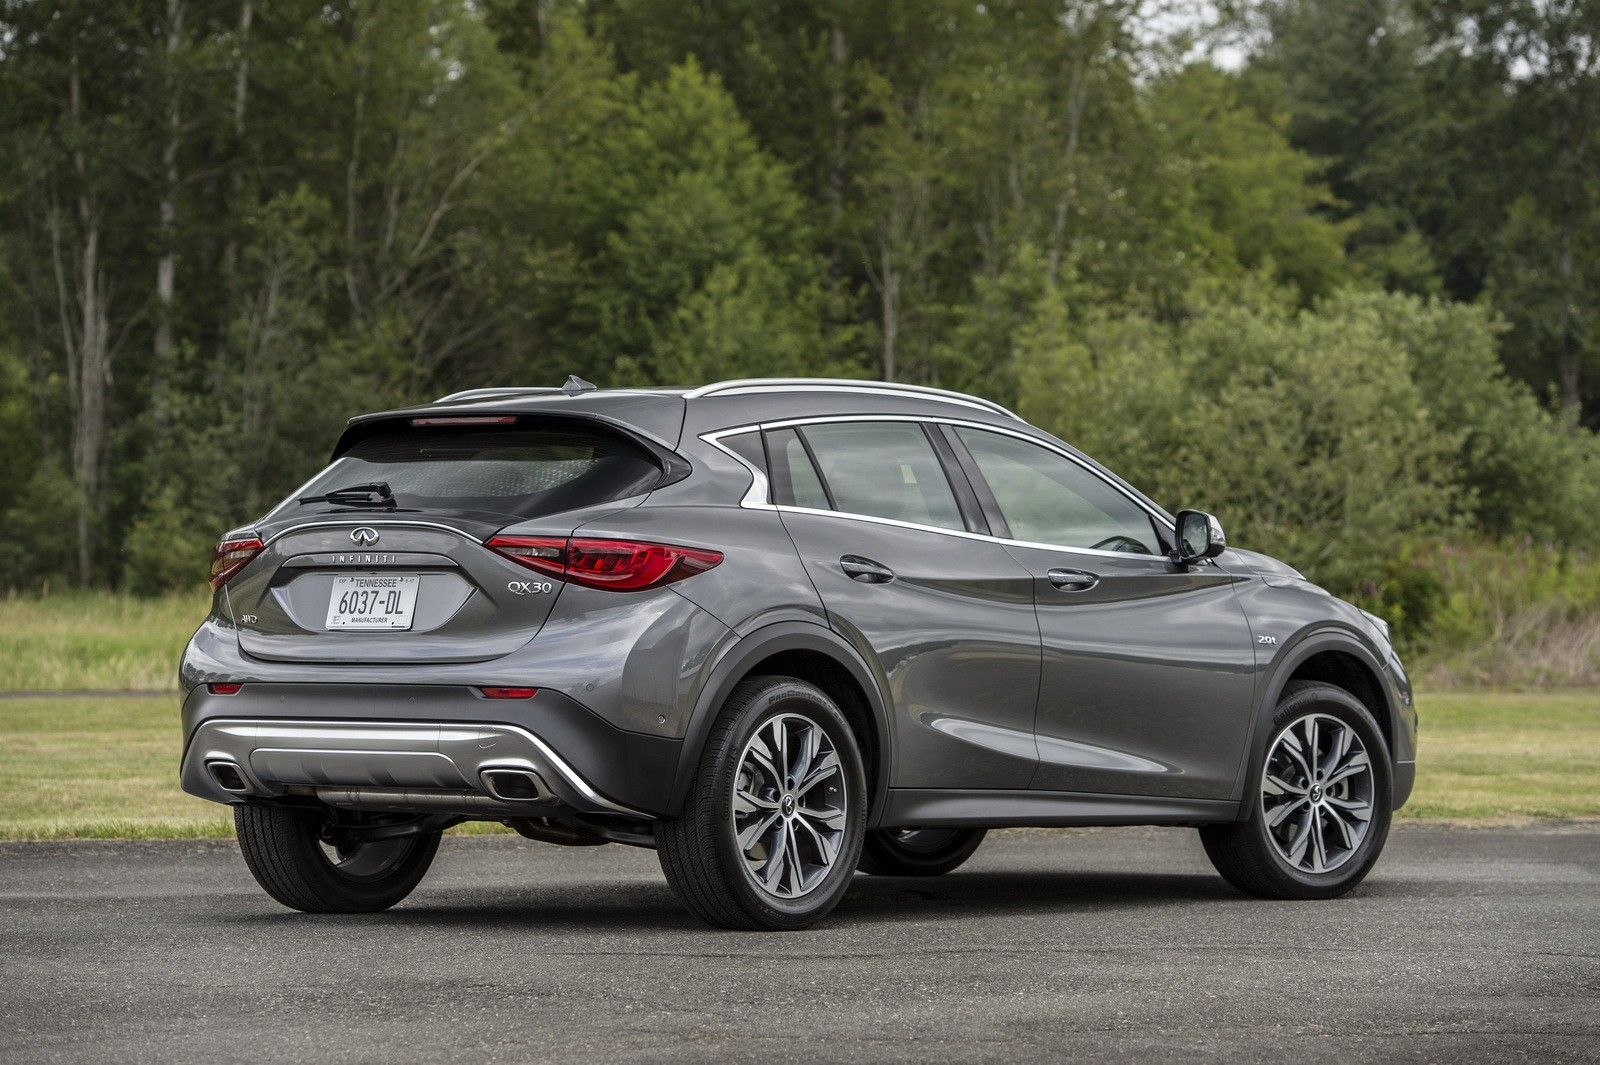 2017 Infiniti Qx30 Priced From Under 30 000 Cheaper Than